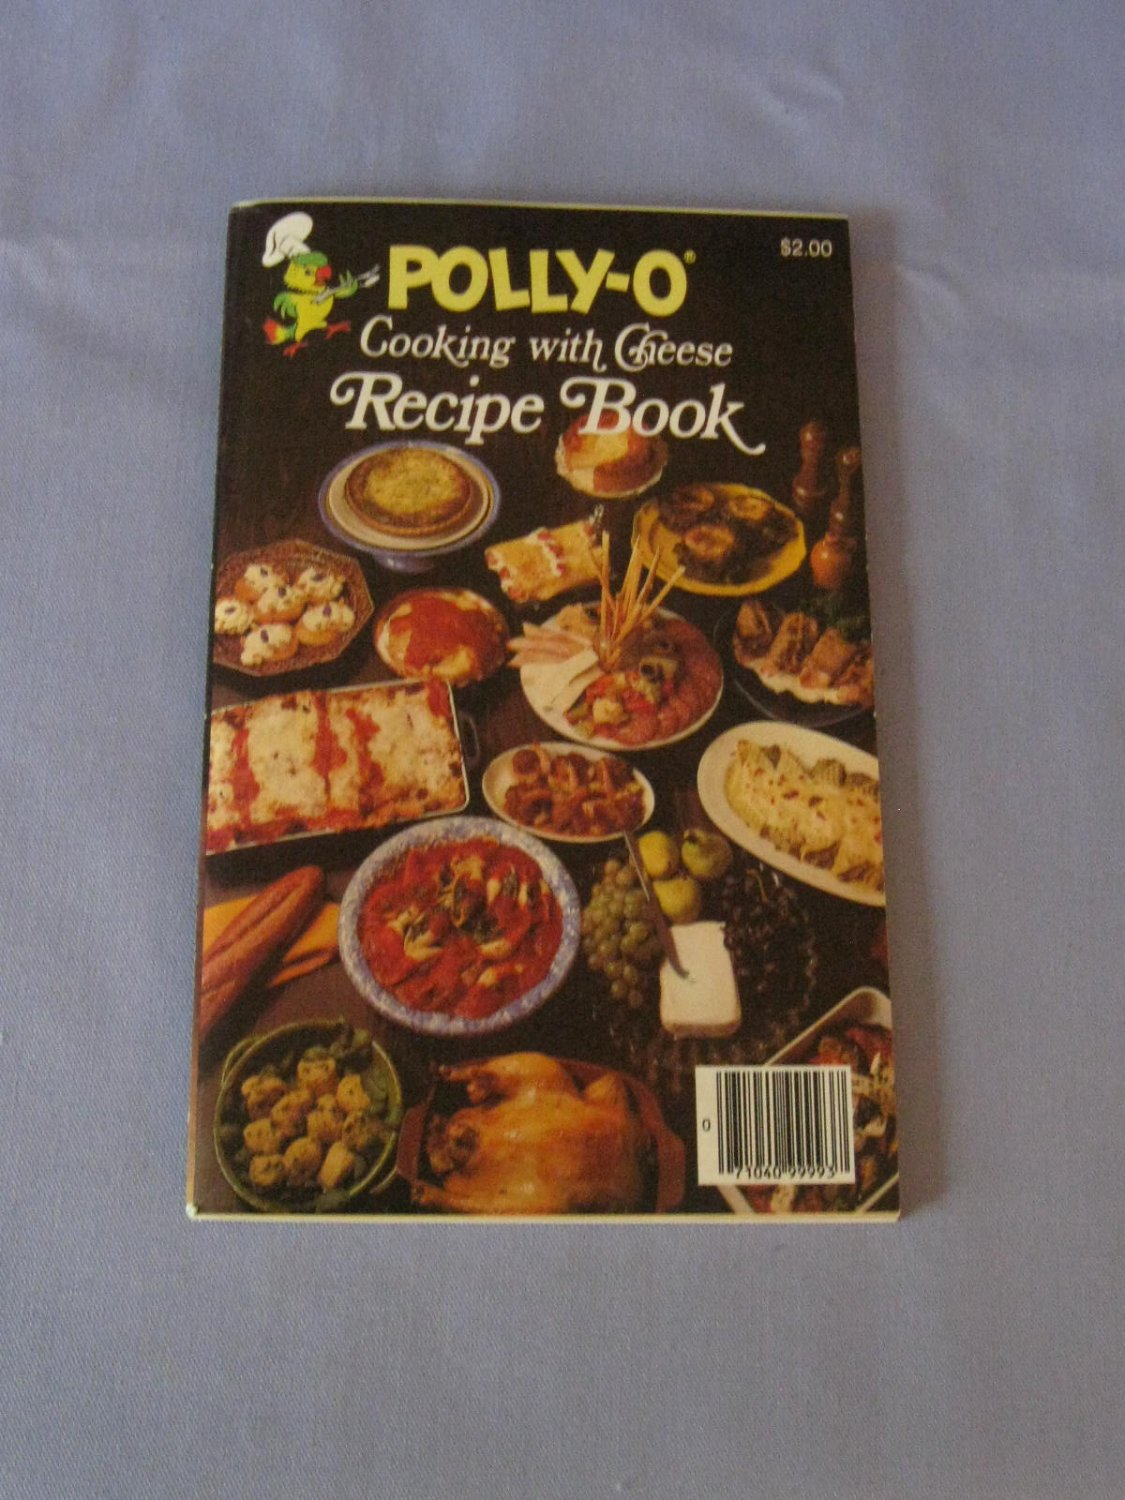 Polly-O Cooking with Cheese Recipe Book ~ Vintage 1981 Cook Book